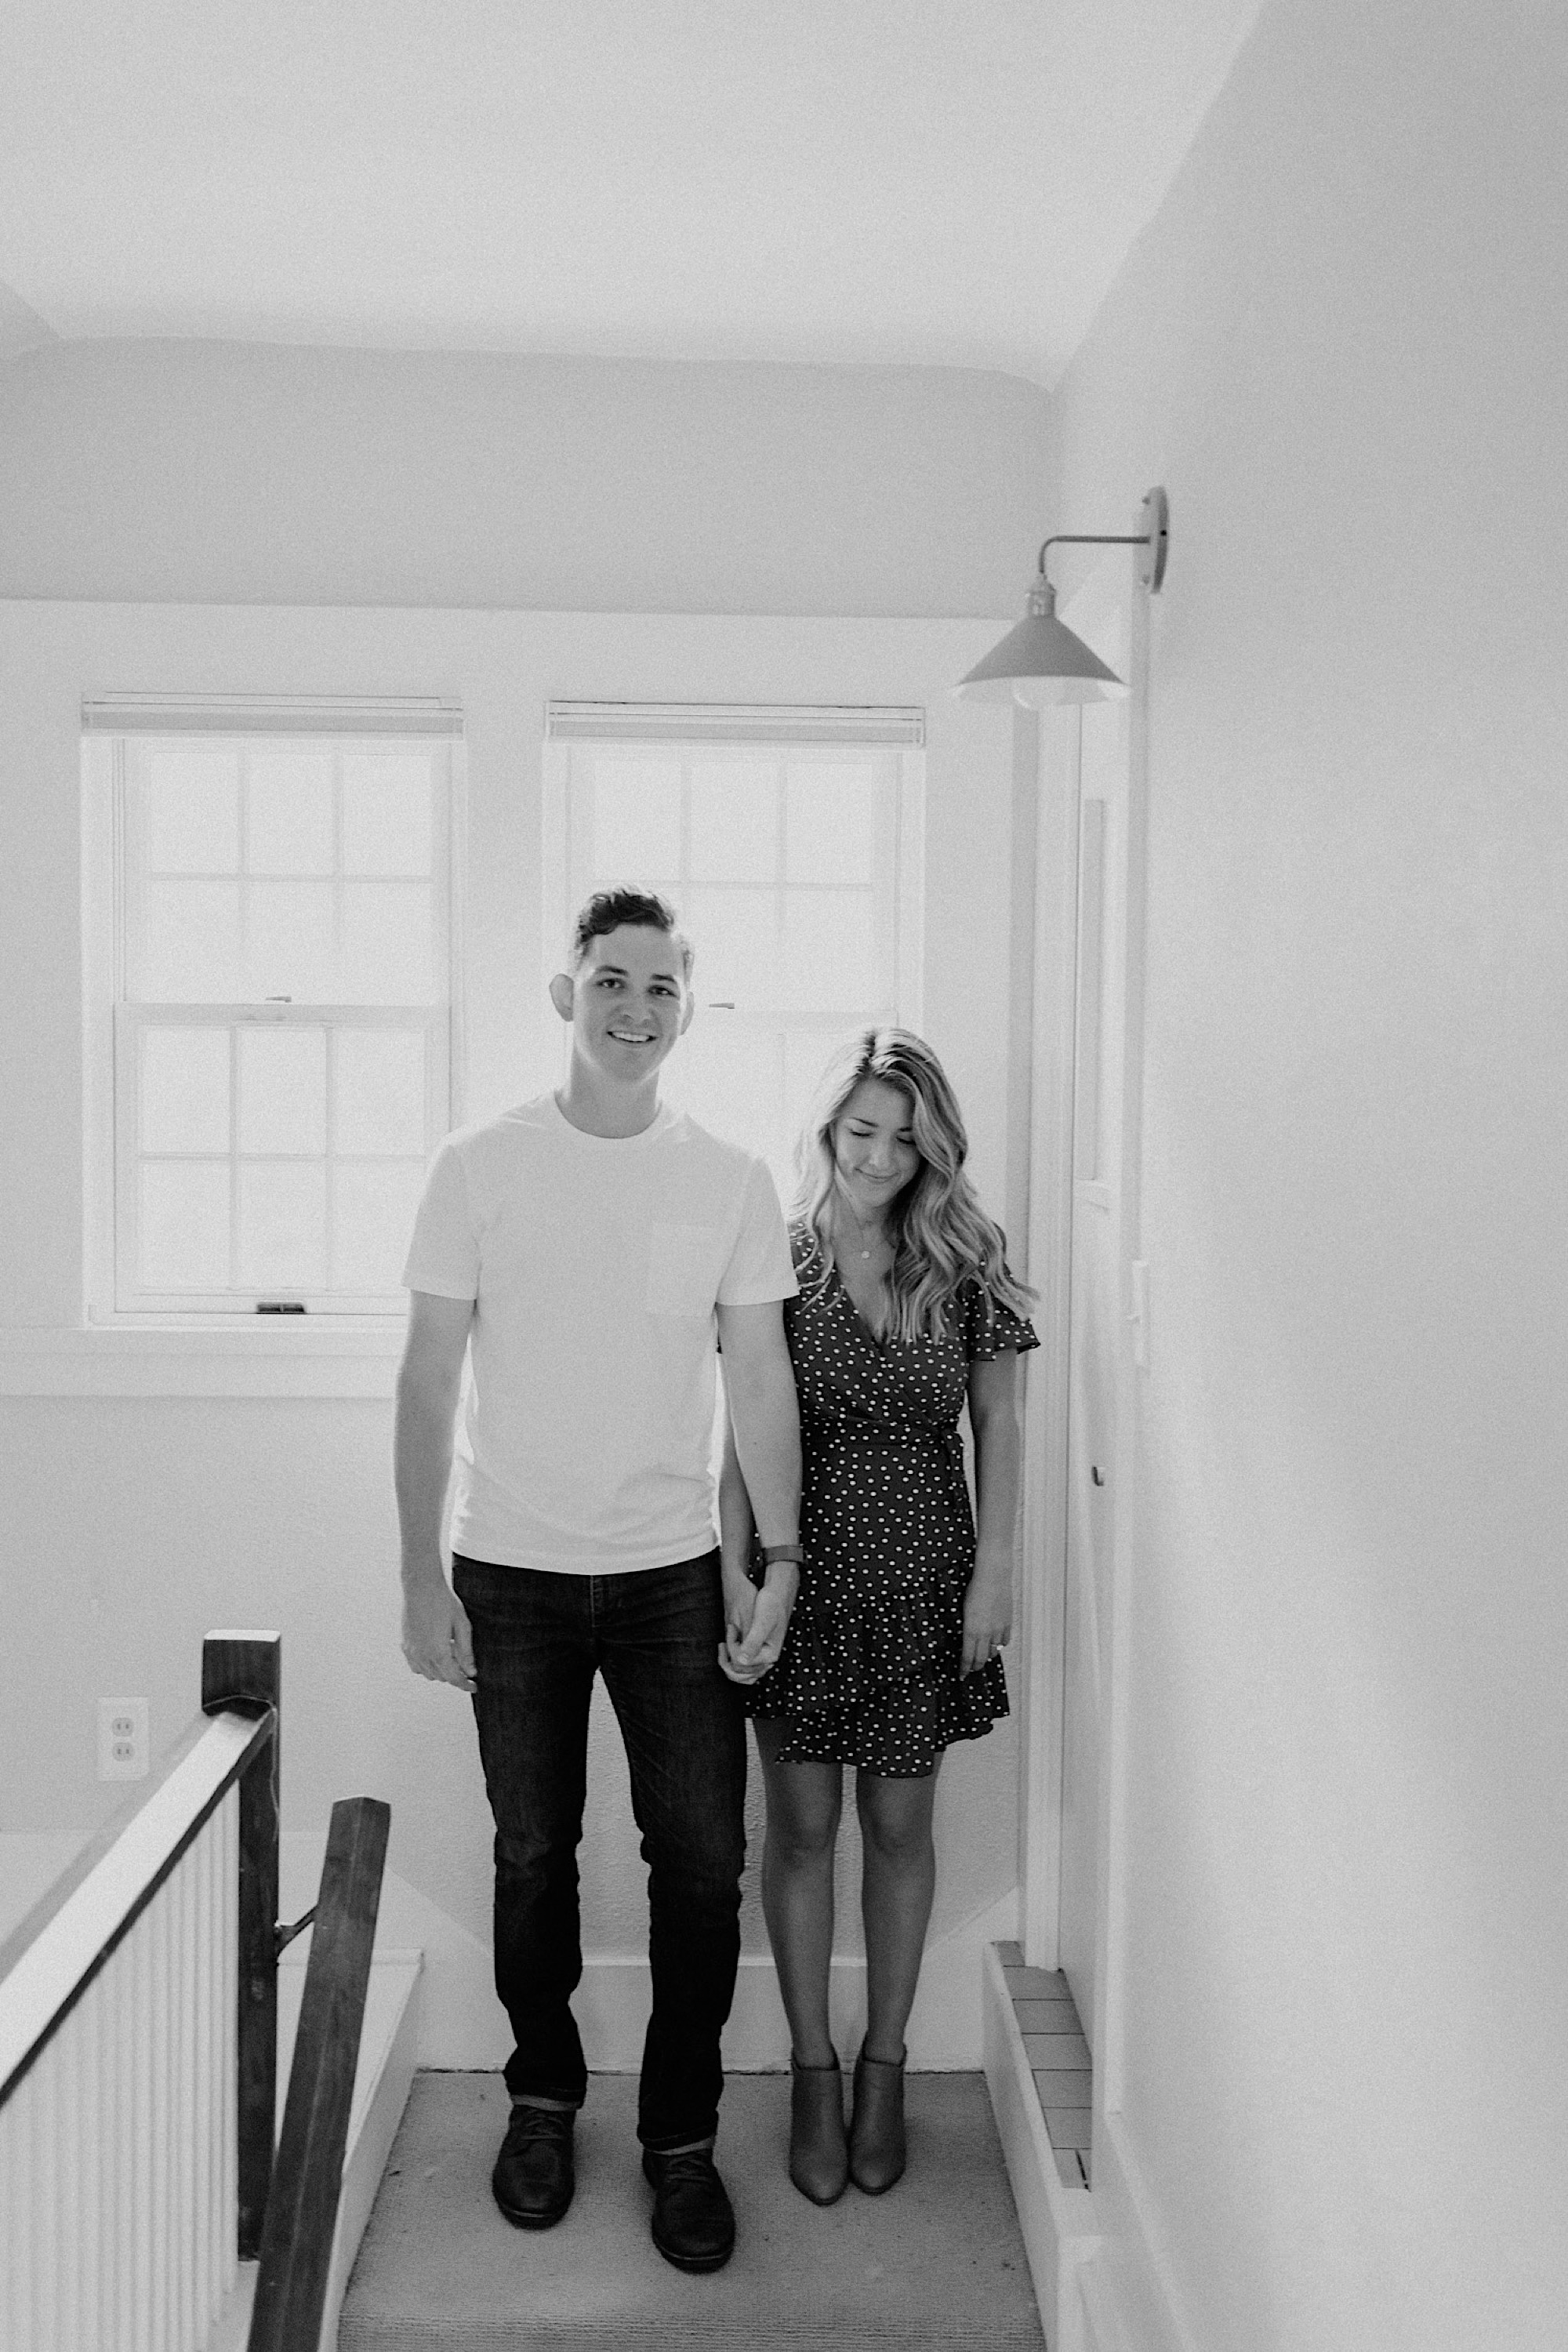 Kathryn Wheeler and Vince Driscoll at home